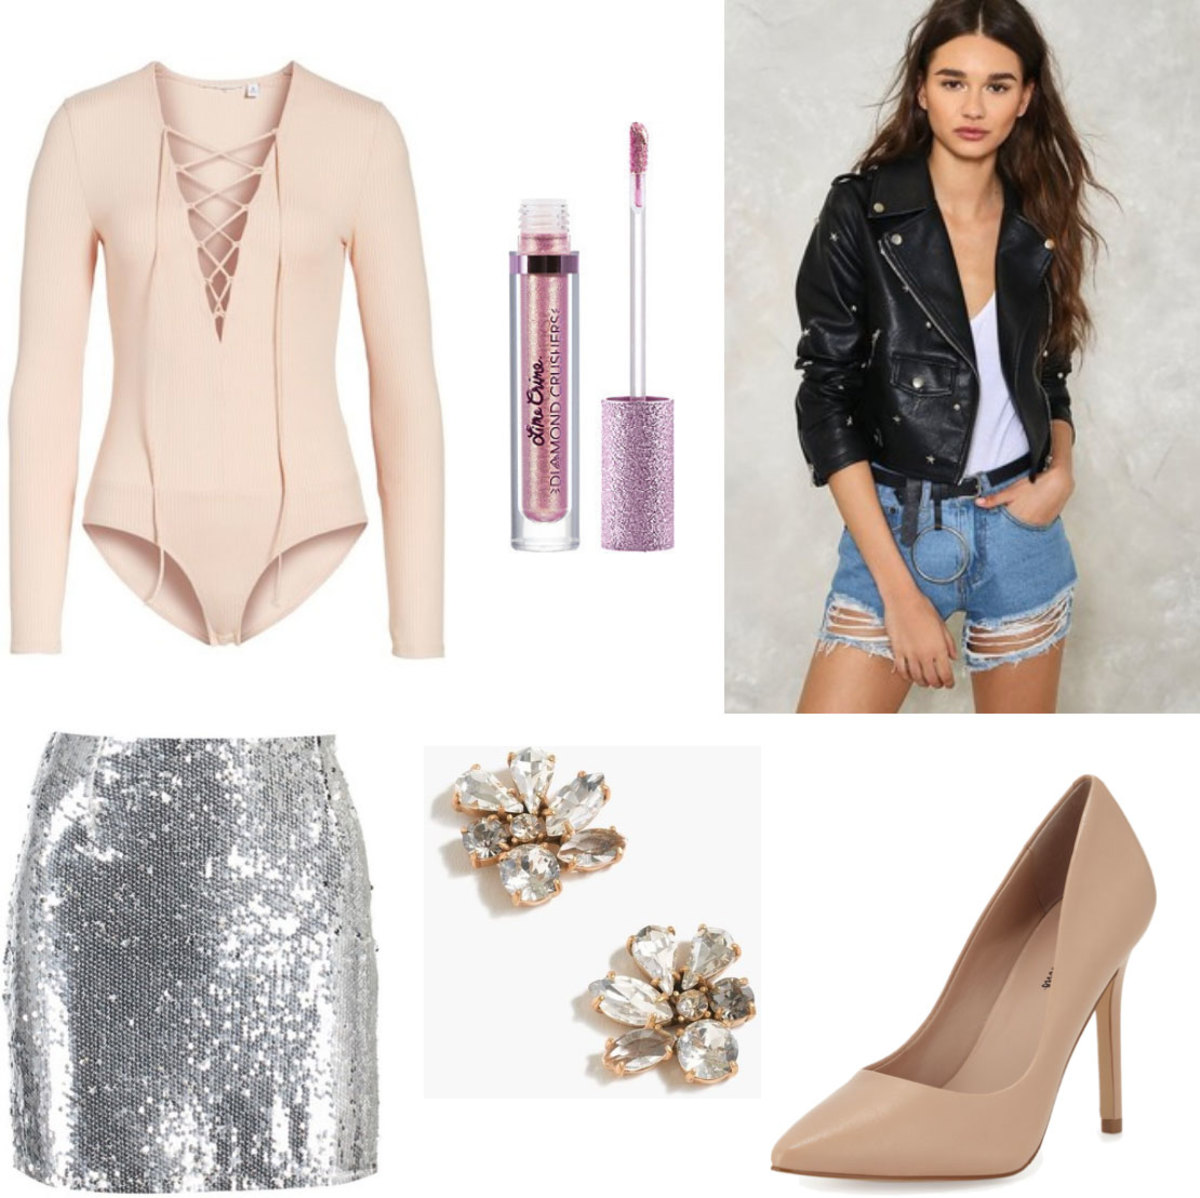 grayl-mini-skirt-sequin-black-jacket-moto-tan-shoe-pumps-studs-silver-metallic-white-top-bodysuit-hairr-fall-winter-nye-dinner.jpg